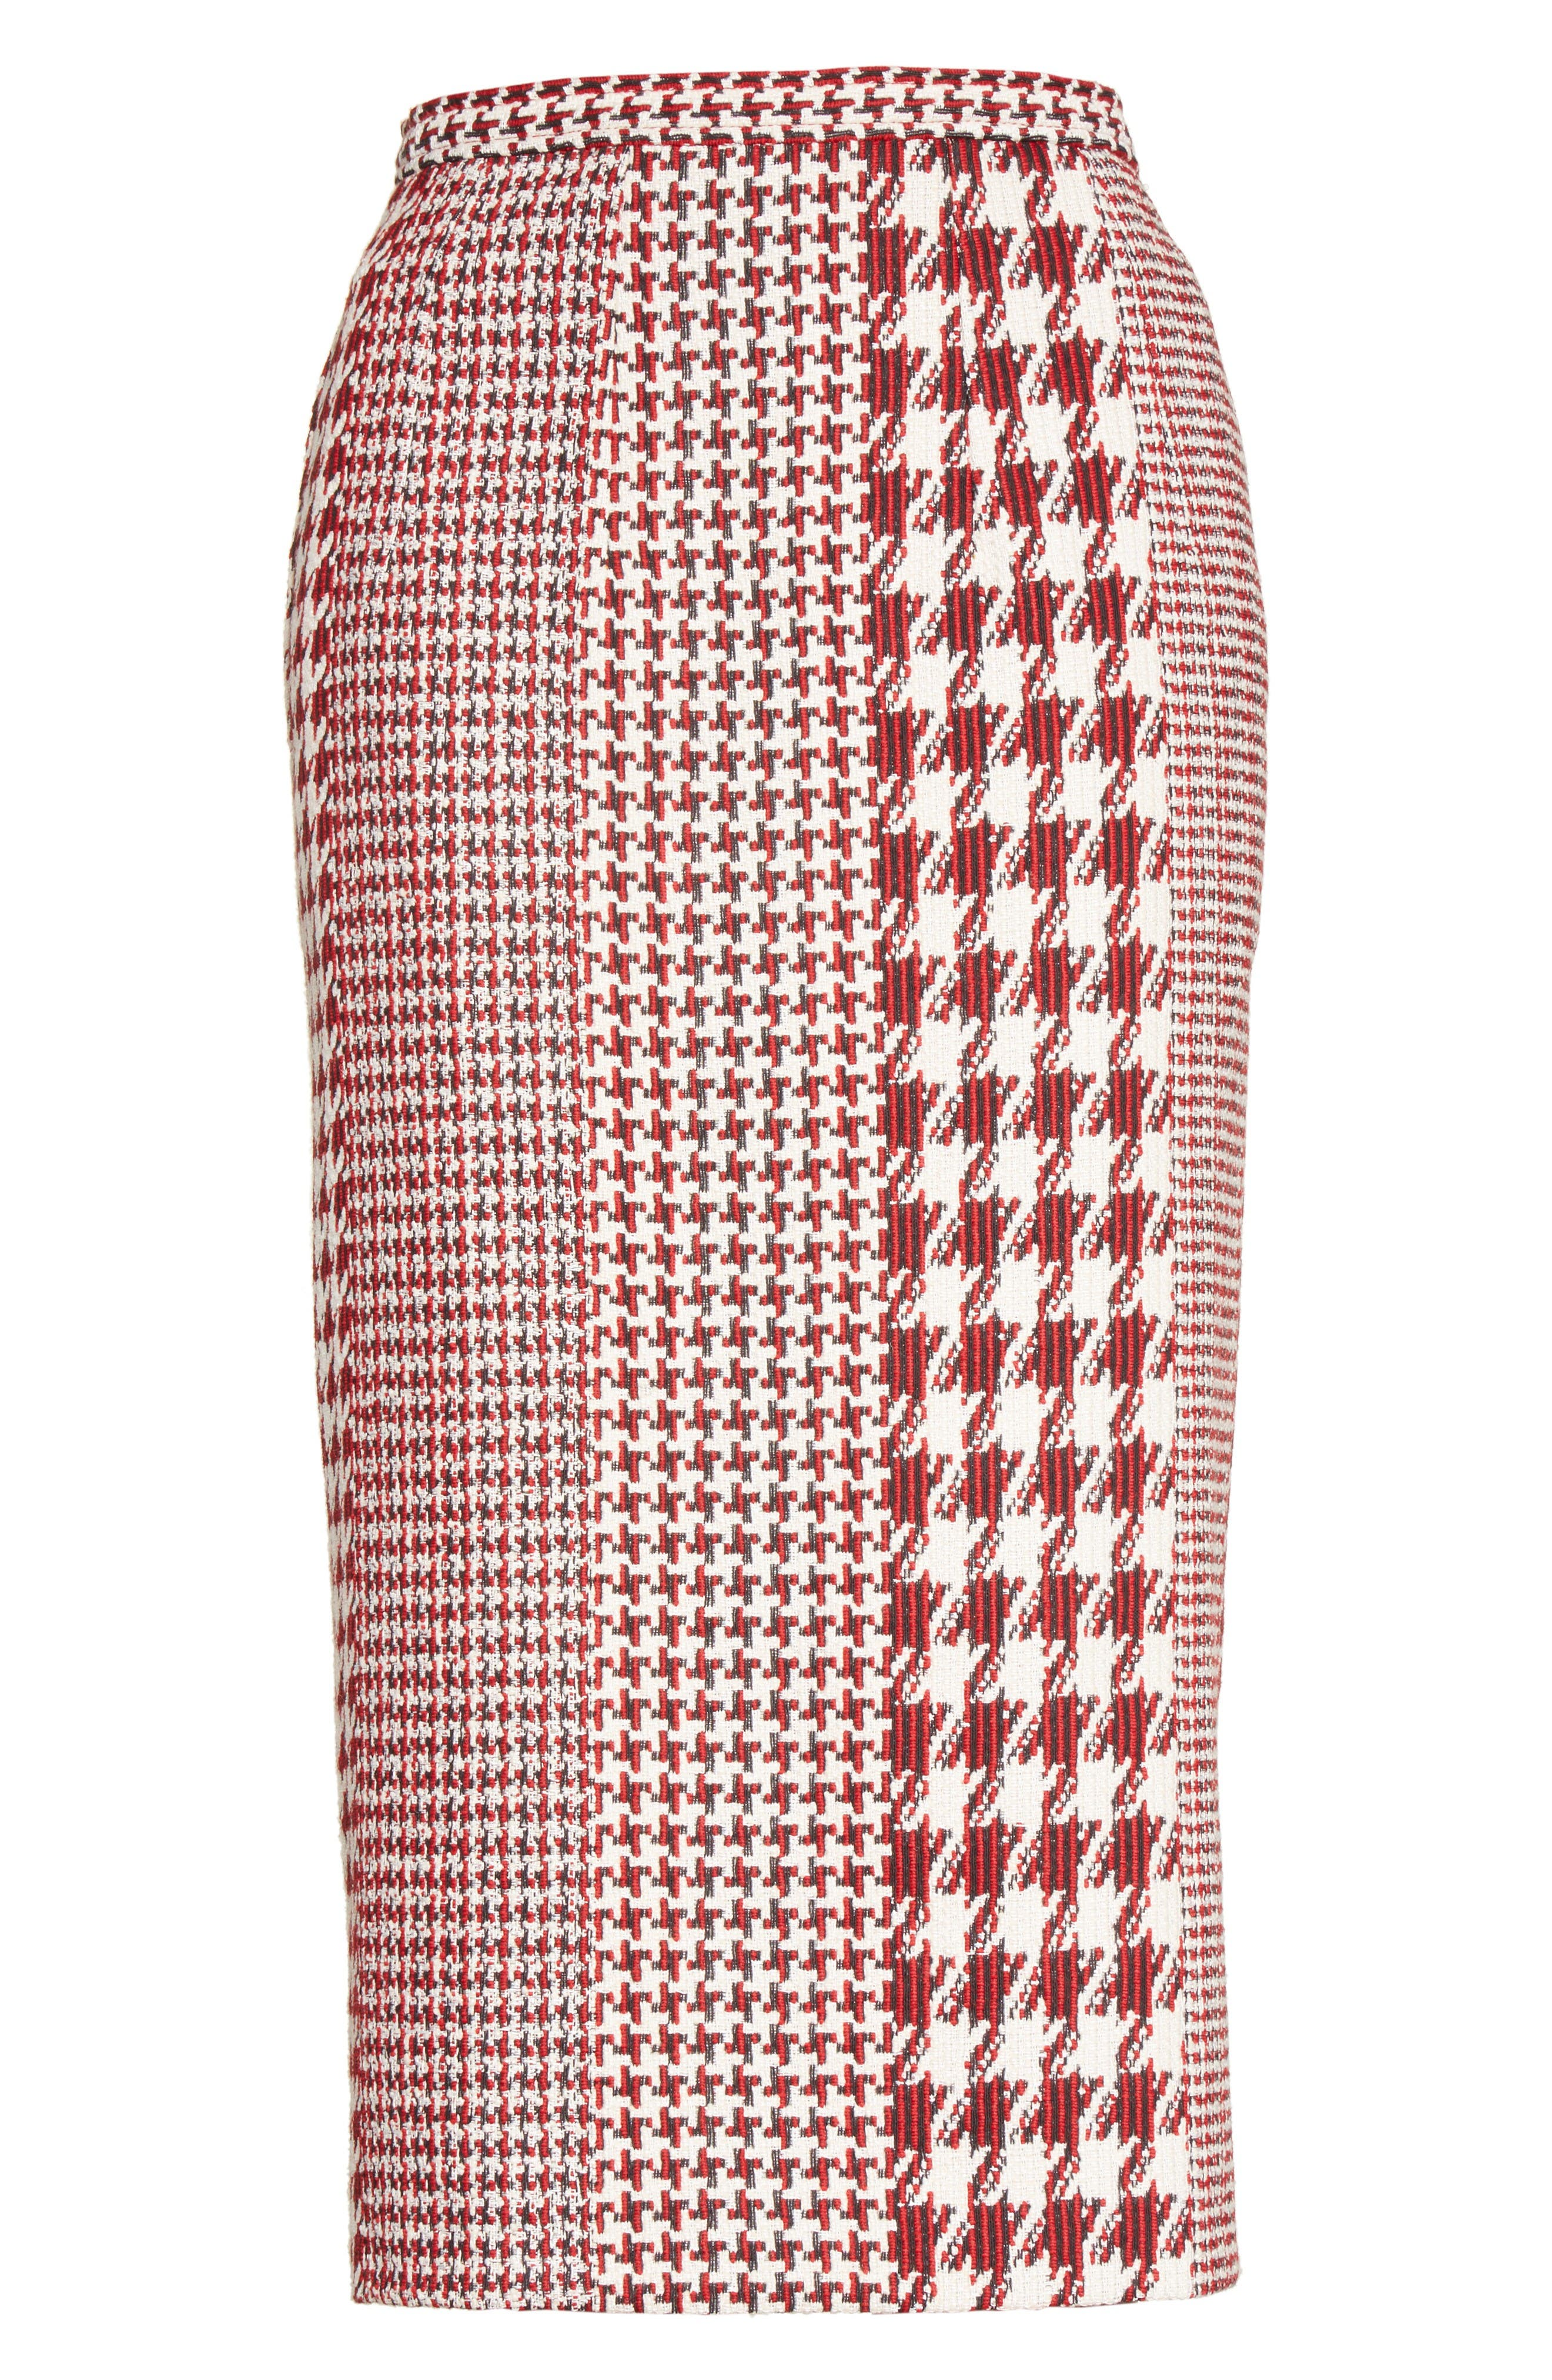 Houndstooth Pencil Skirt,                             Alternate thumbnail 4, color,                             Red Multi